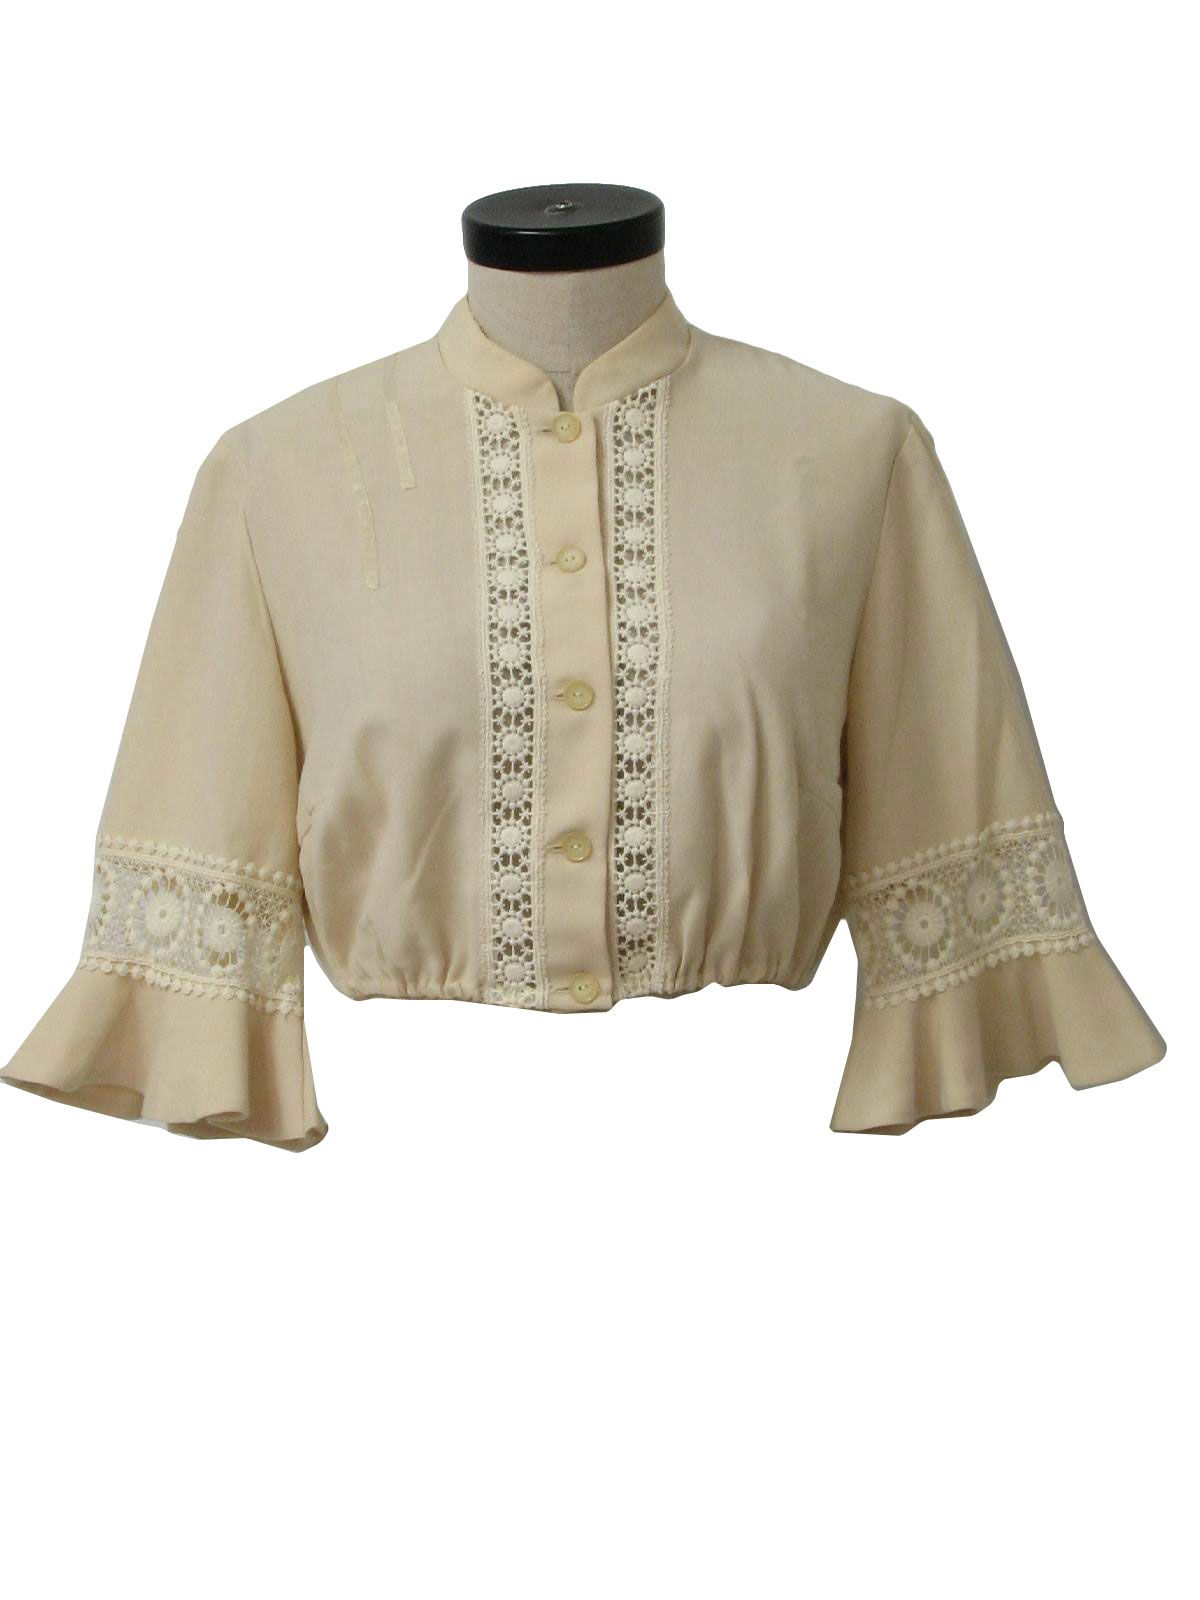 70s -Kuhnen- Womens ecru, blended cotton, half shirt, having set in longsleeves, which end below the elbow, having a 3.0in bell shaped band. Lace details each sleeve and flanks the front button close, below the band collar. French darts add bodice shaping, with elastic finishing the hem area. This garment measures 16in from shoulder to hem.